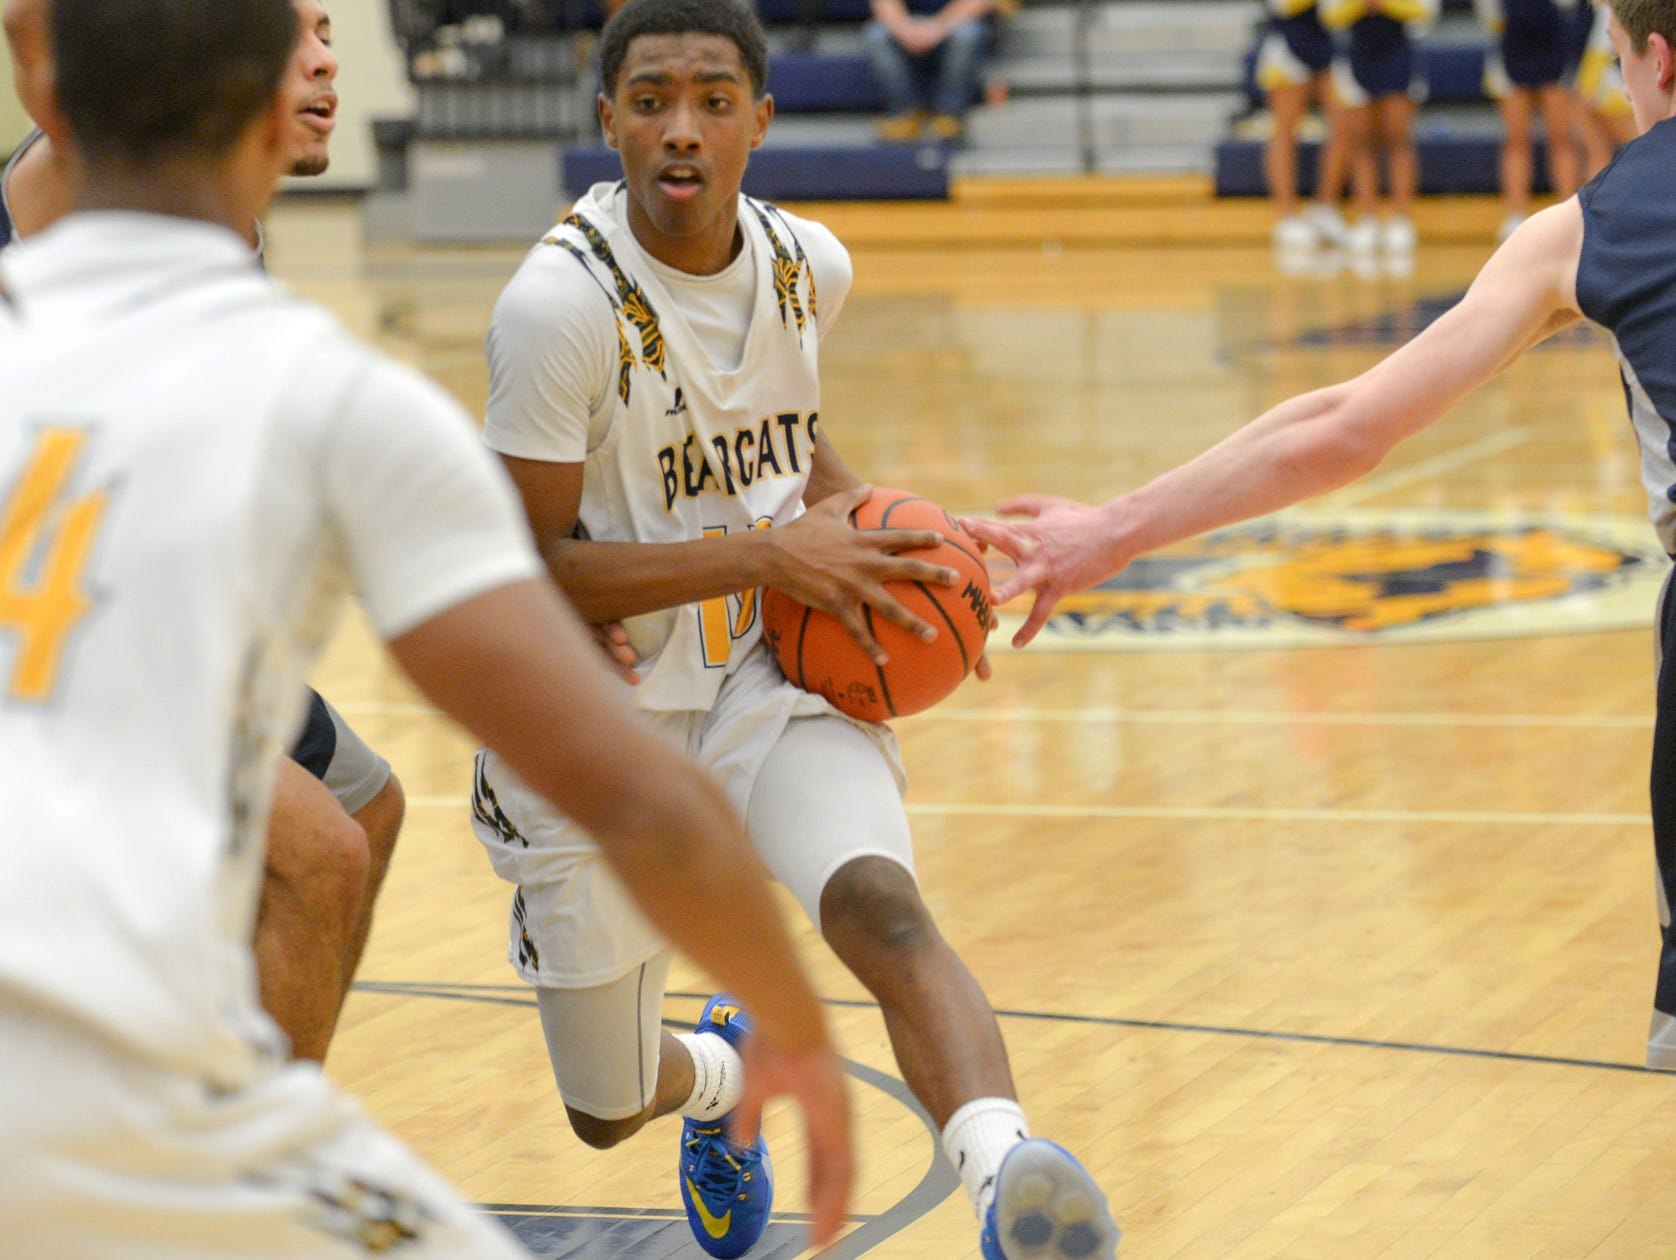 Central's Jahmiel Wade in game action Friday night.